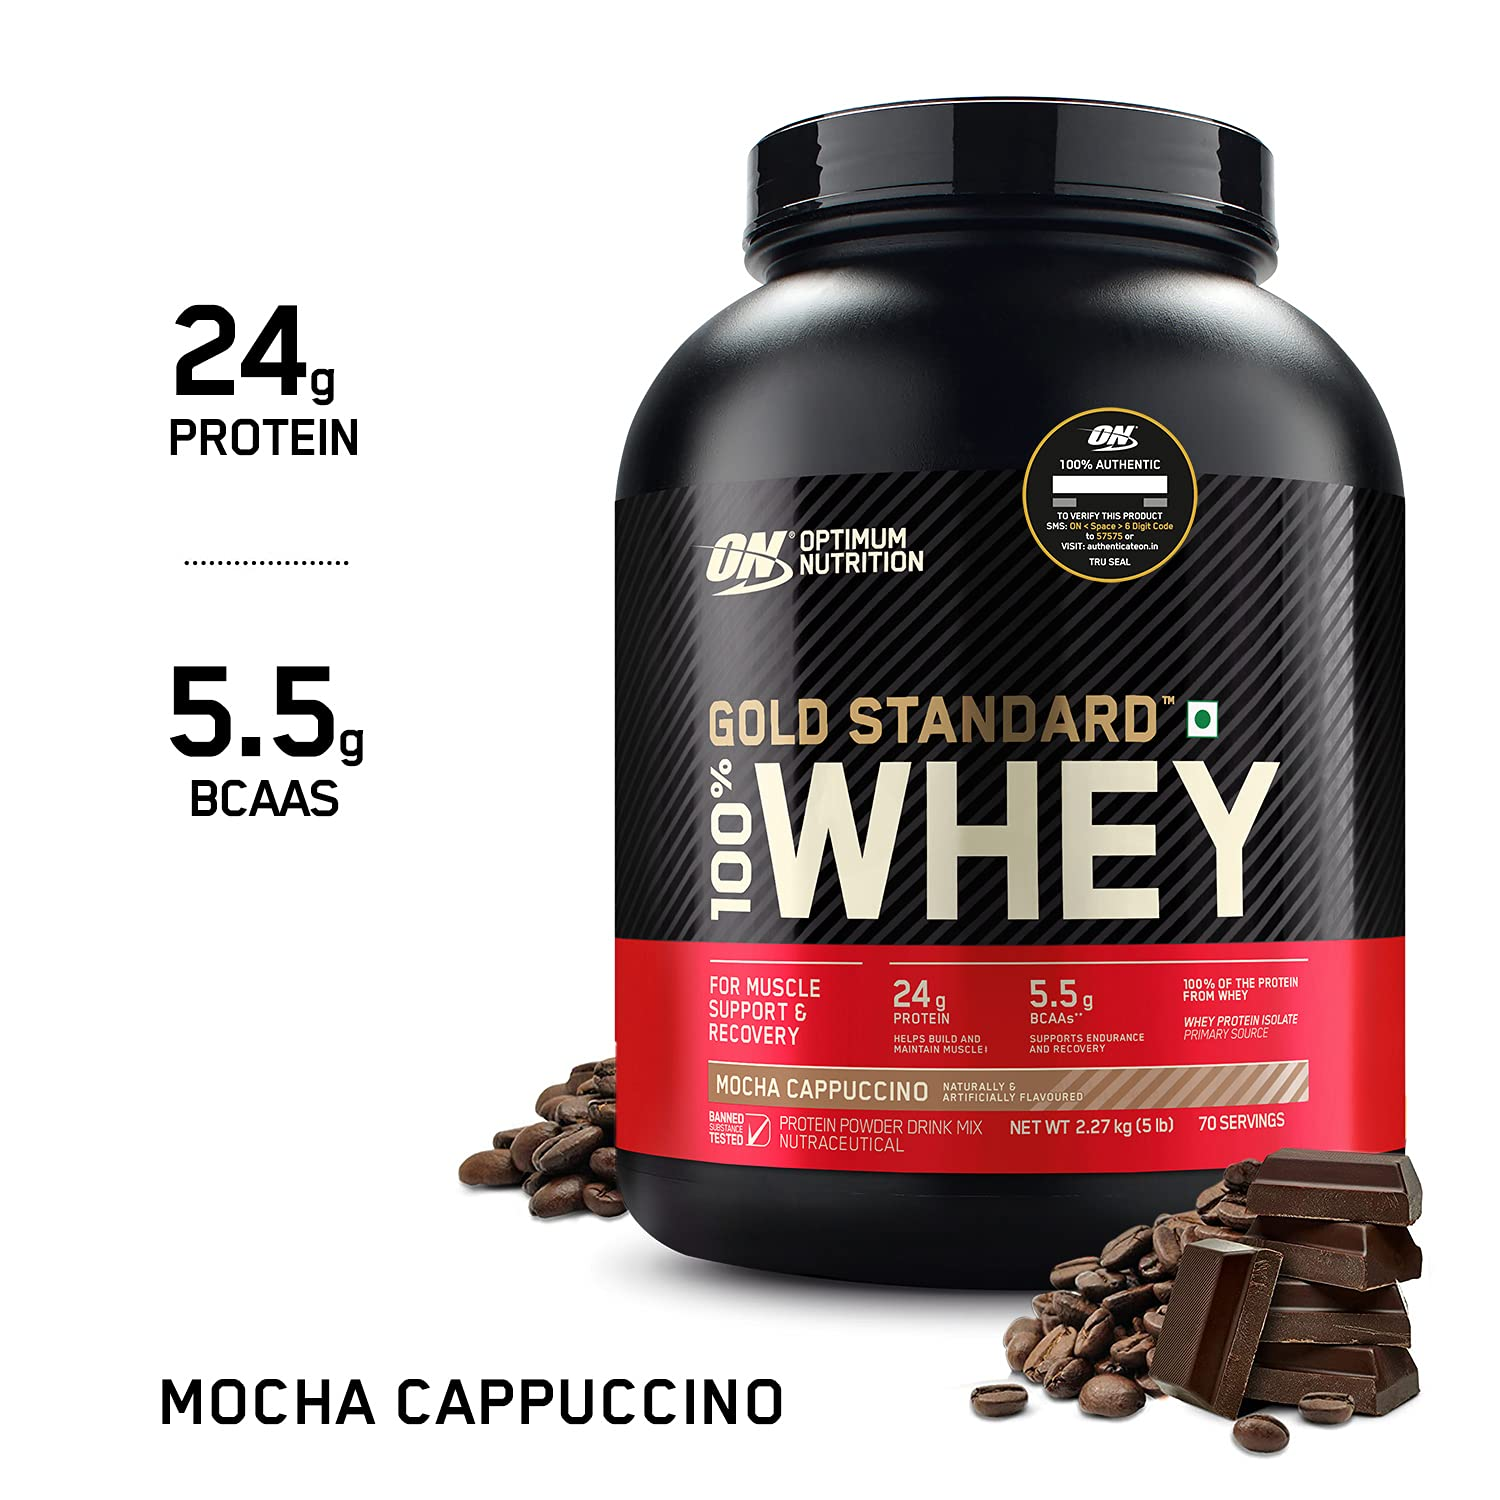 Optimum Nutrition (ON) Gold Standard 100% Whey Protein Powder - 5 Lbs, 2.27 Kg (Mocha Cappuccino), Primary Source Isolate